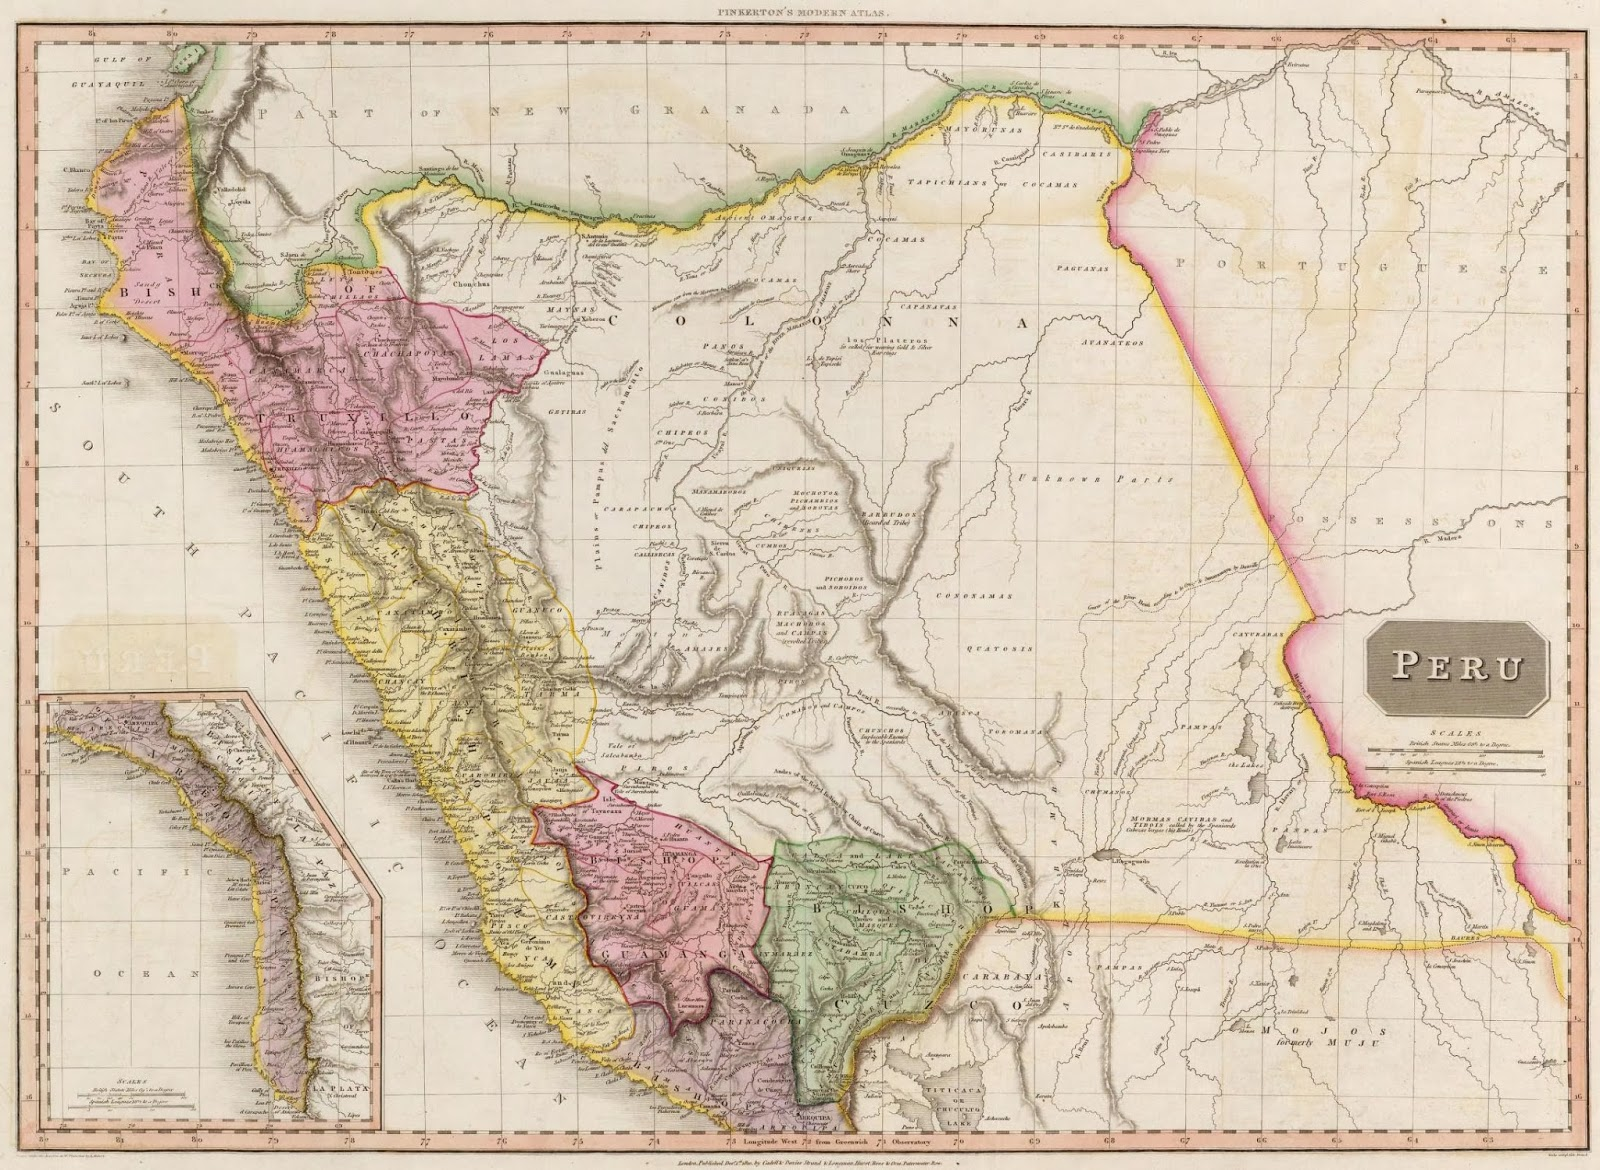 Mapas del per en el siglo xix el per en 1810 1812 1823 1828 a modern atlas from the latest and best authorities exhibiting the various divisions of the world with its chief empires kingdoms and states gumiabroncs Gallery